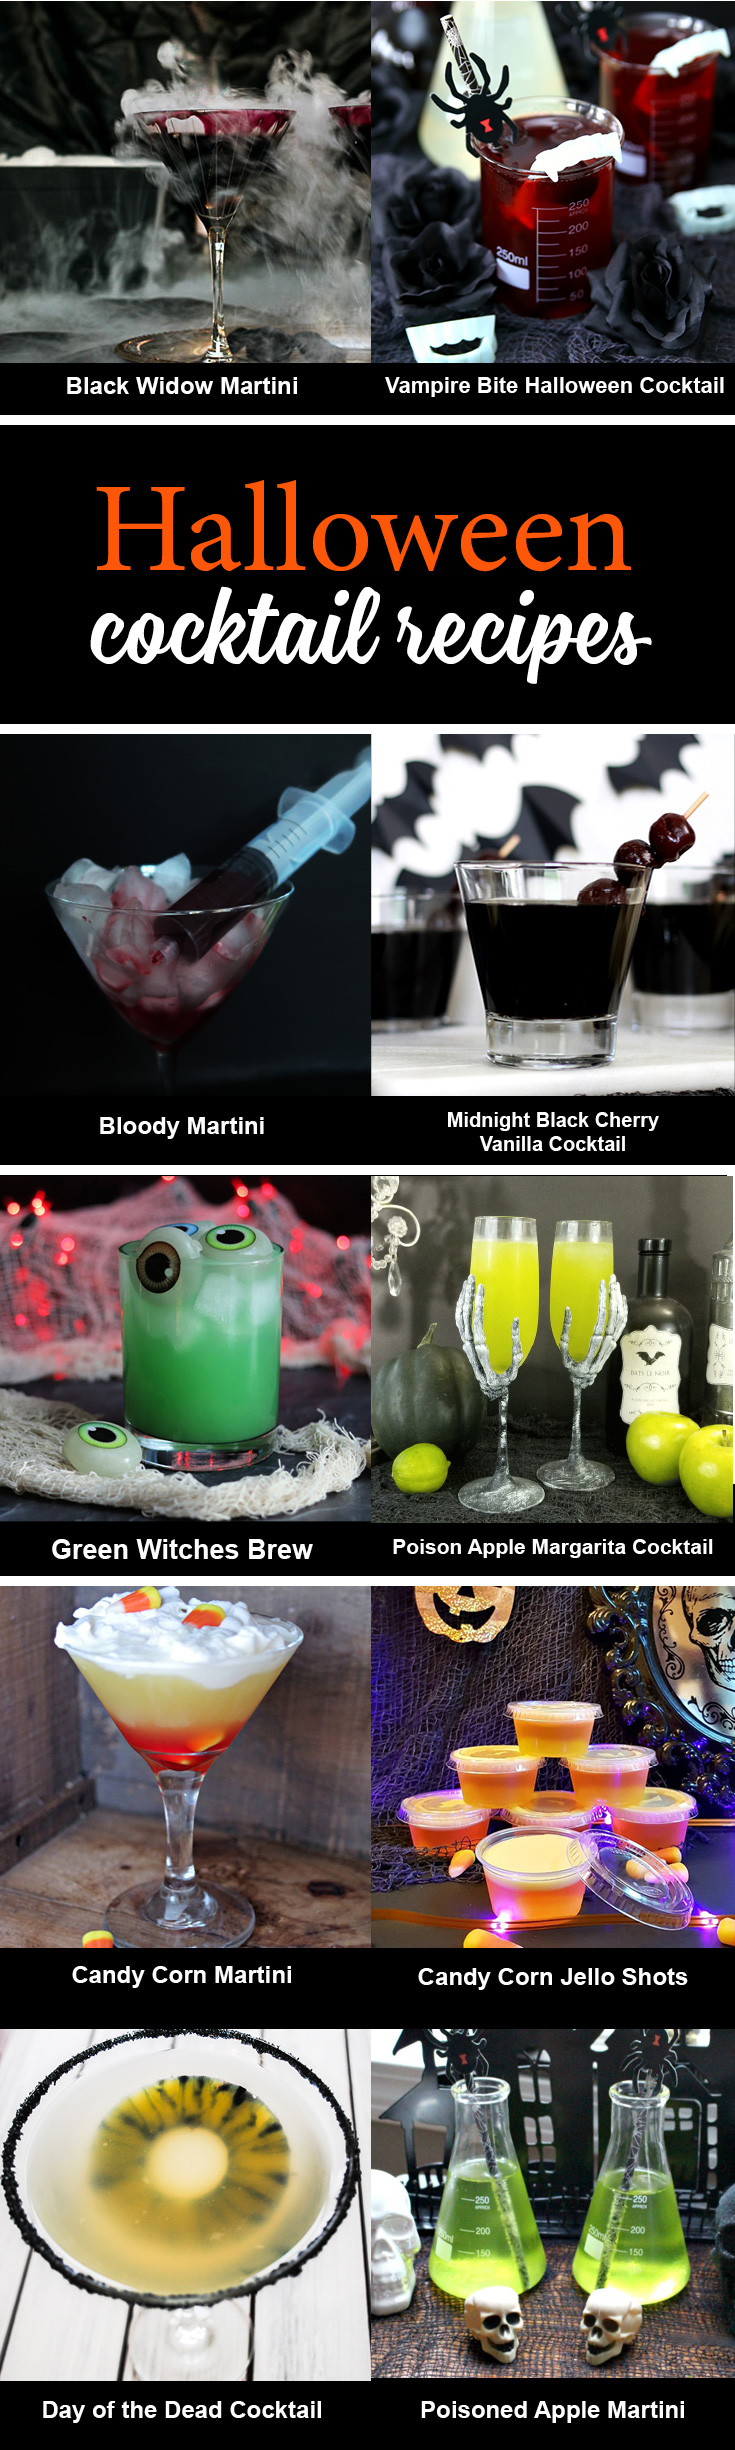 10 Halloween Cocktail Recipes